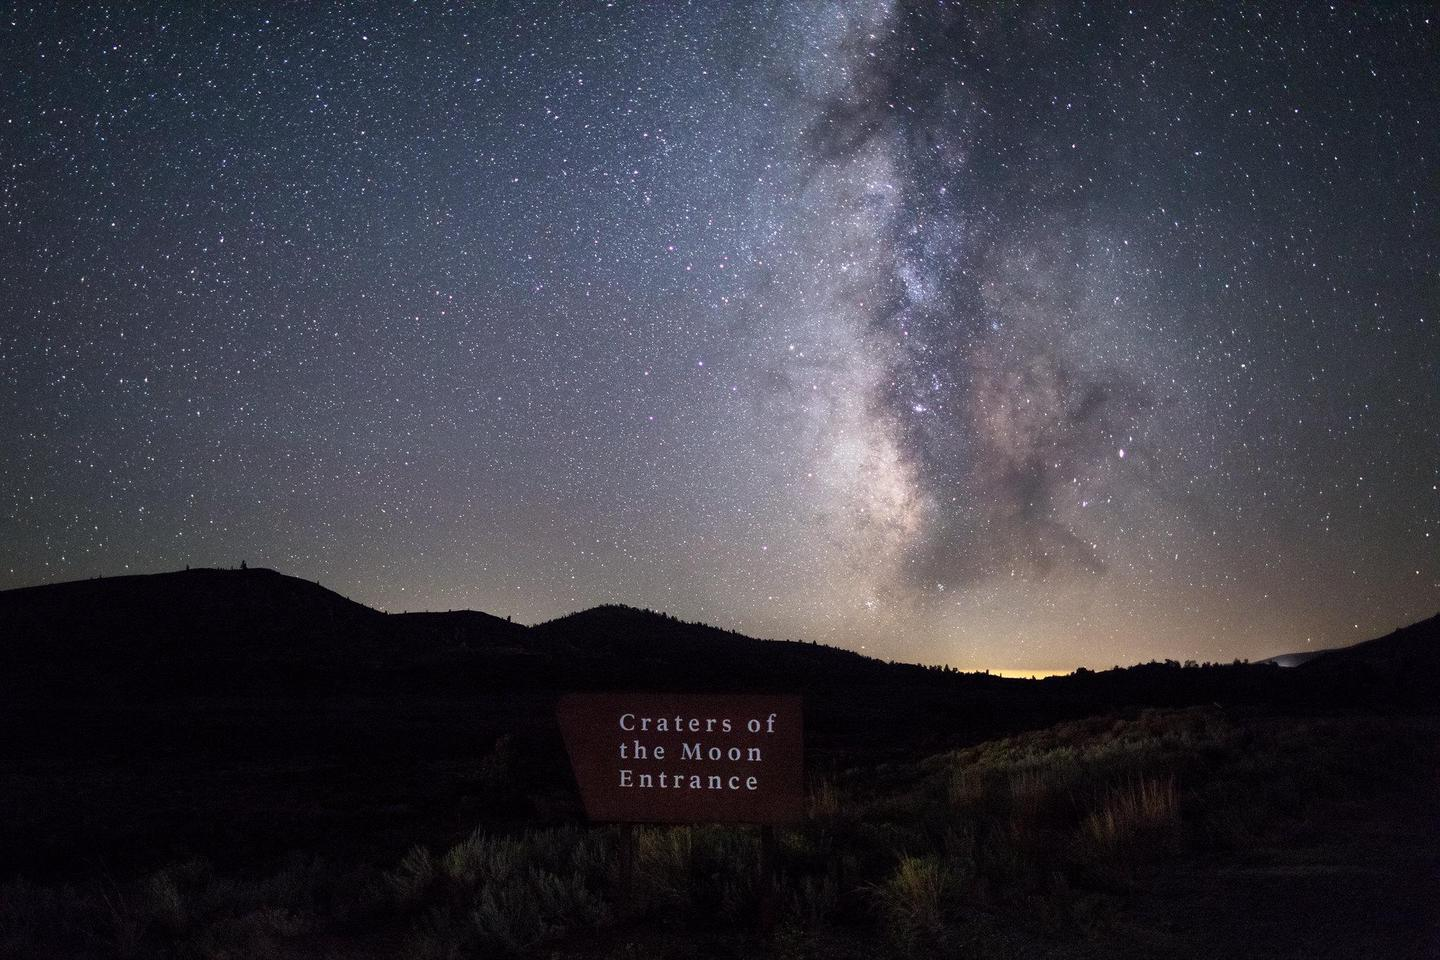 Stargazing at CratersCraters of the Moon was designated an International Dark Sky Park in 2017, making it one of the best places in the country to stargaze.